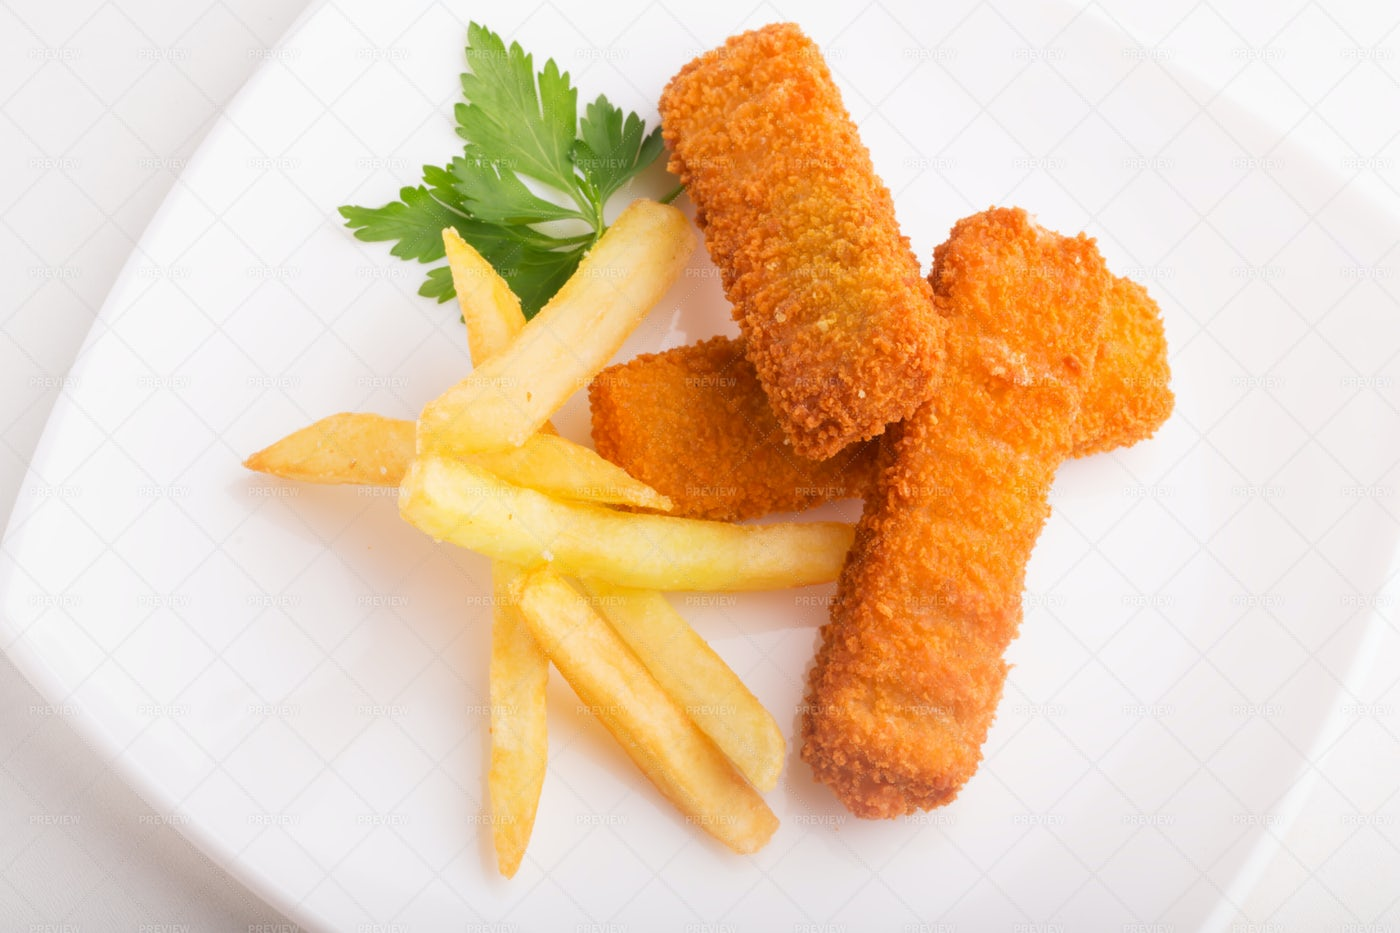 Fish Sticks And French Fries: Stock Photos